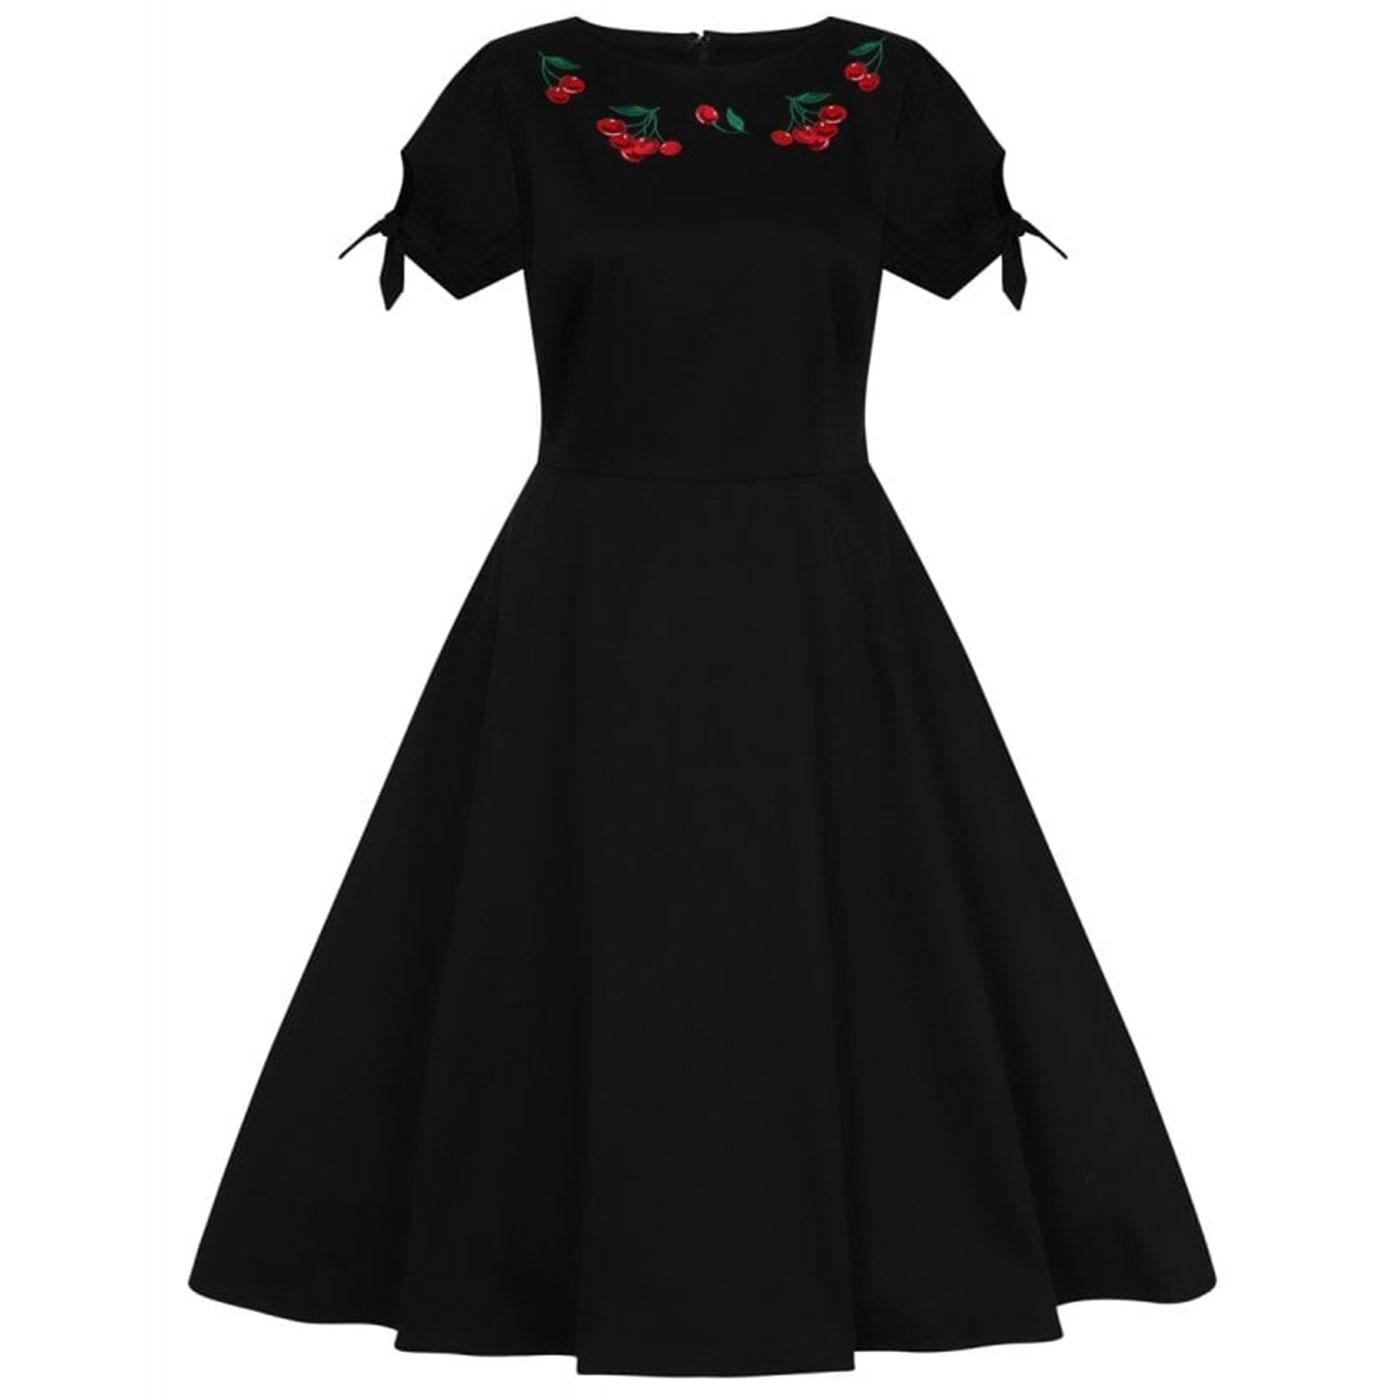 Stephanie COLLECTIF Retro 50s Cherry Swing Dress